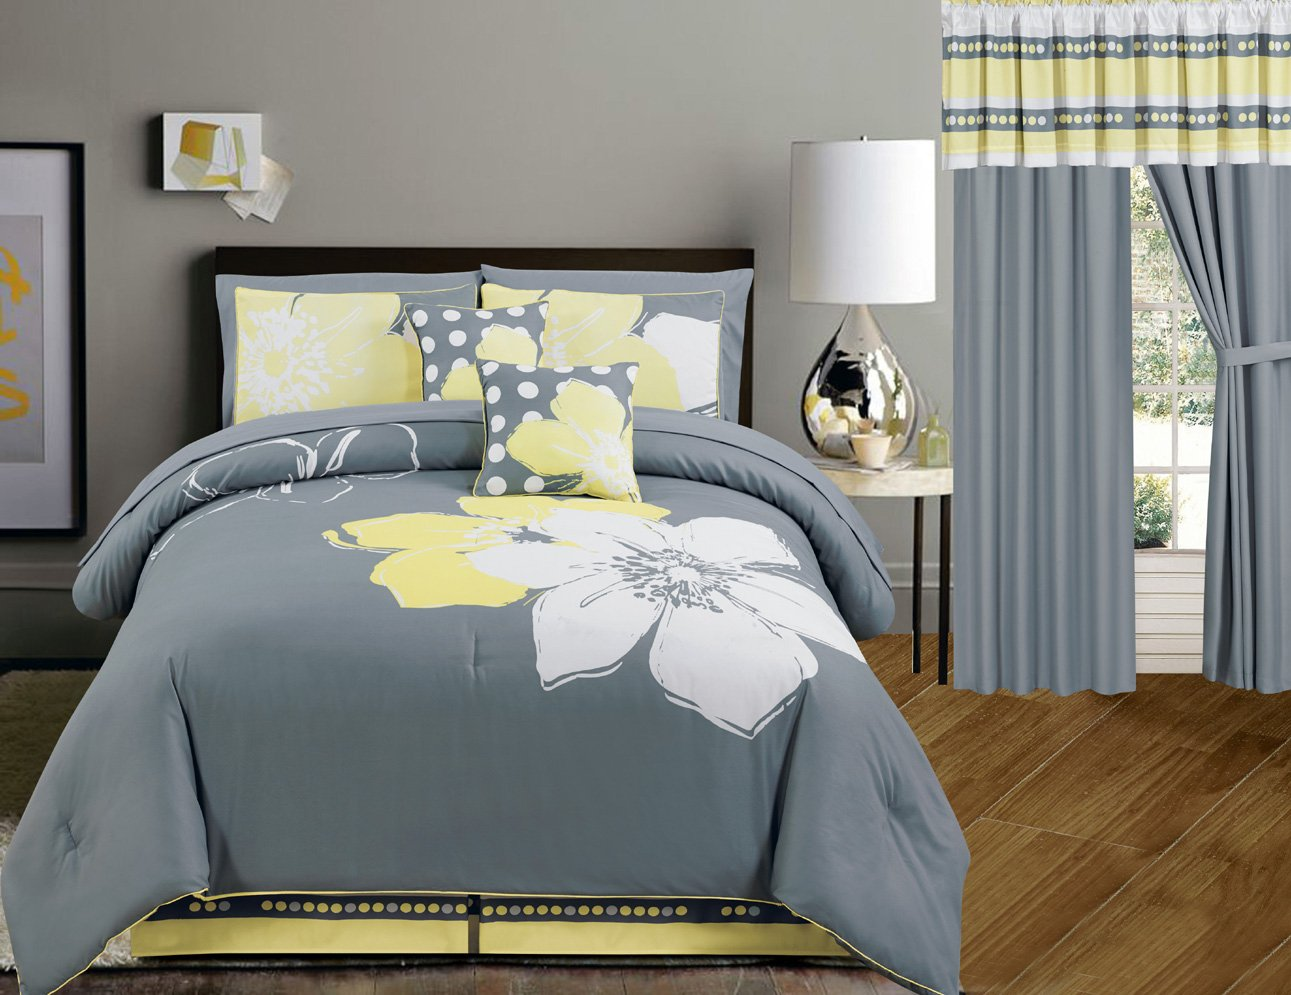 p tundra kidding taykcb are you sheets size best set dc htm qn bedding shts queen gray bed gry